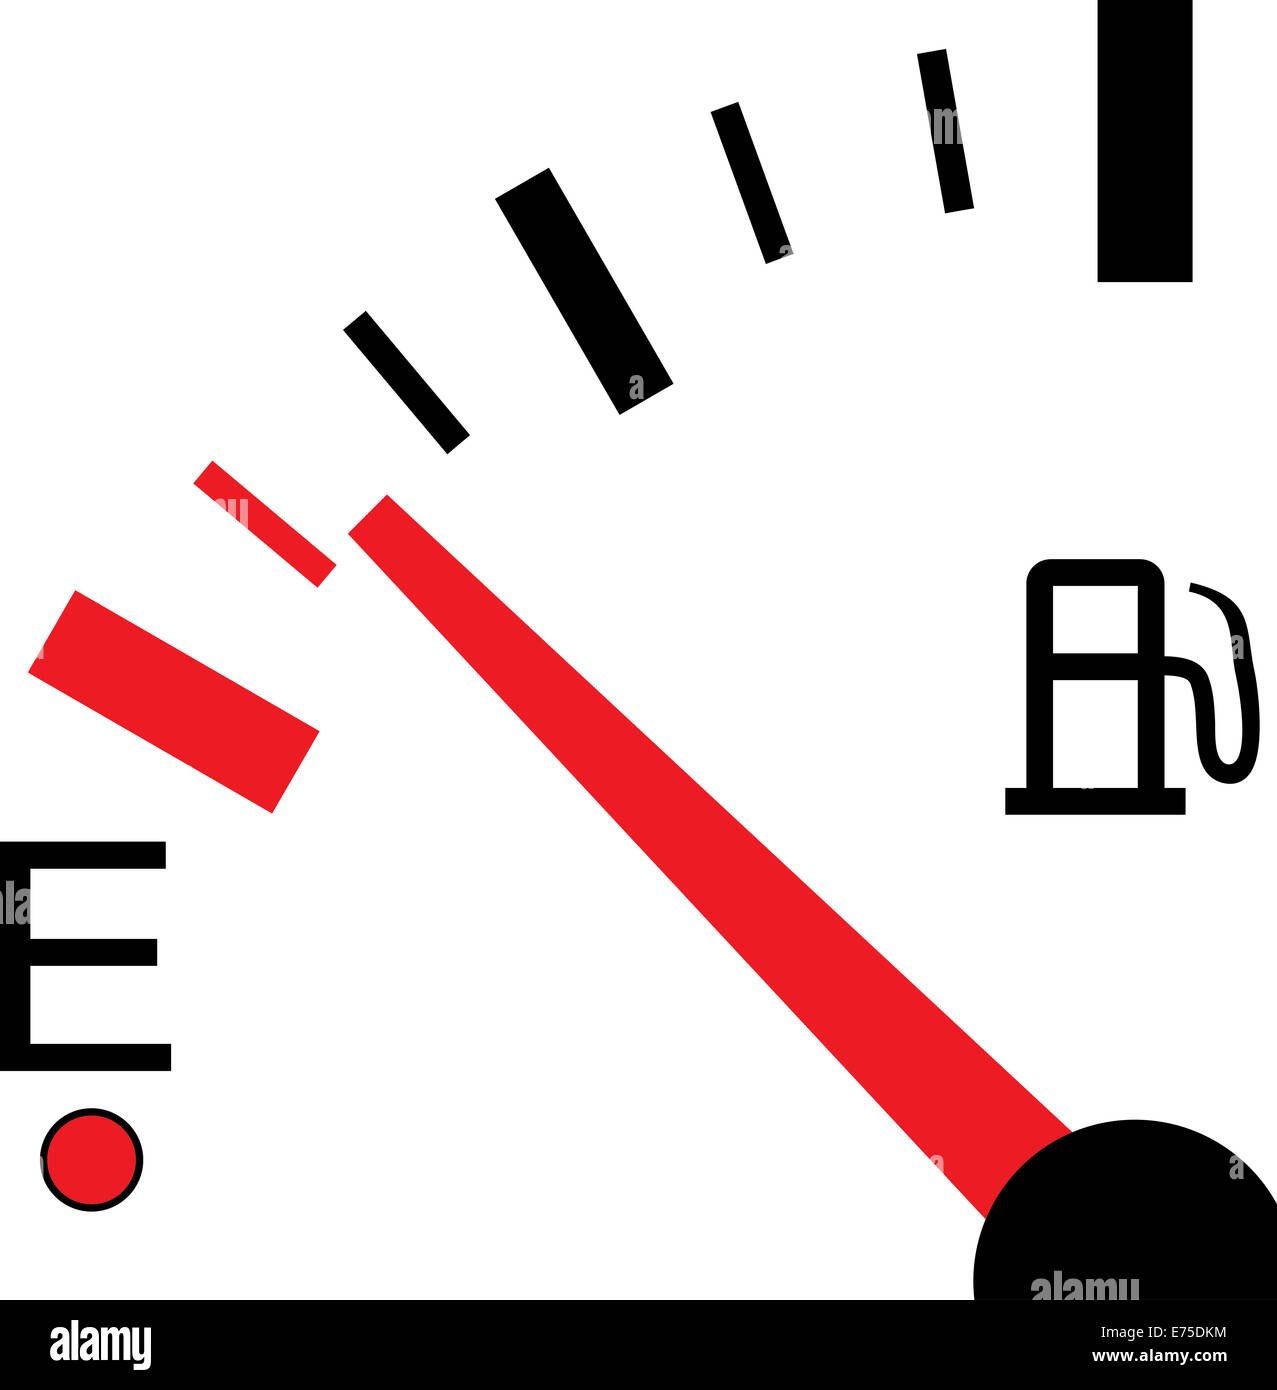 Une illustration d'une jauge de carburant sur fond blanc Photo Stock